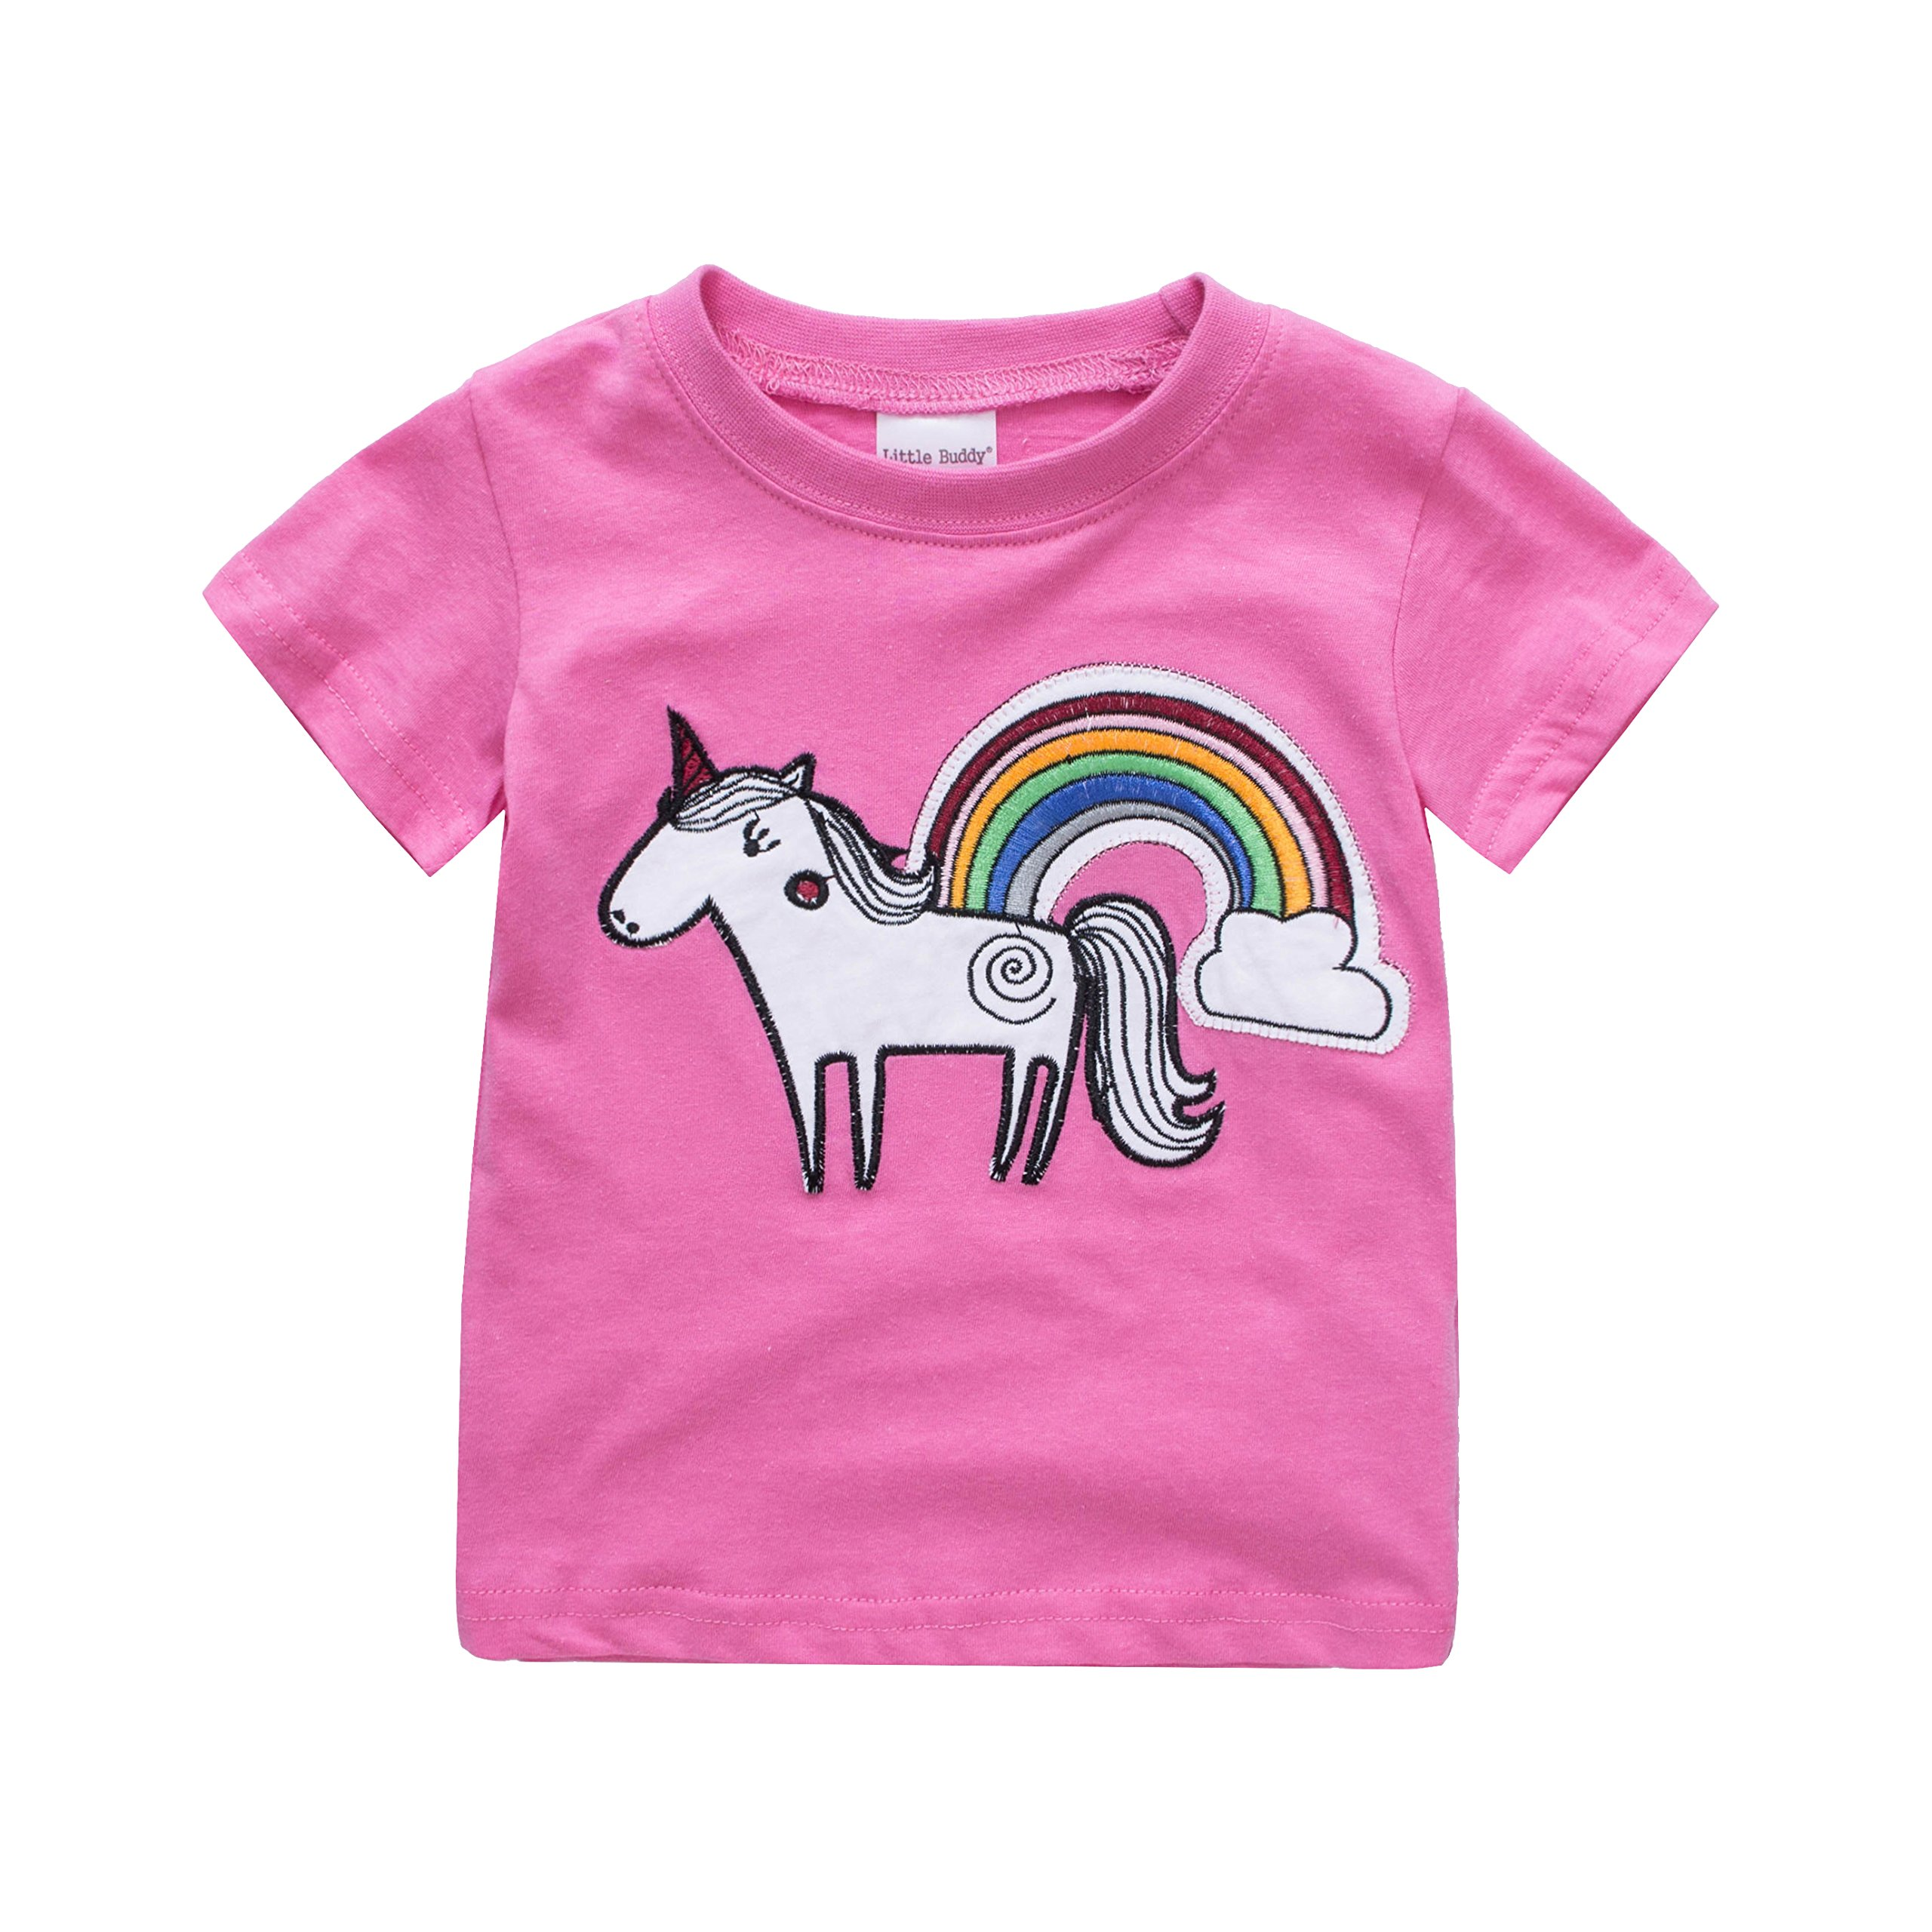 Toddler Boys Girls T-Shirts Tops Organic Short-Sleeved Cute Animals Prints Embroidery Unisex 2t-7t (2T, Rose)